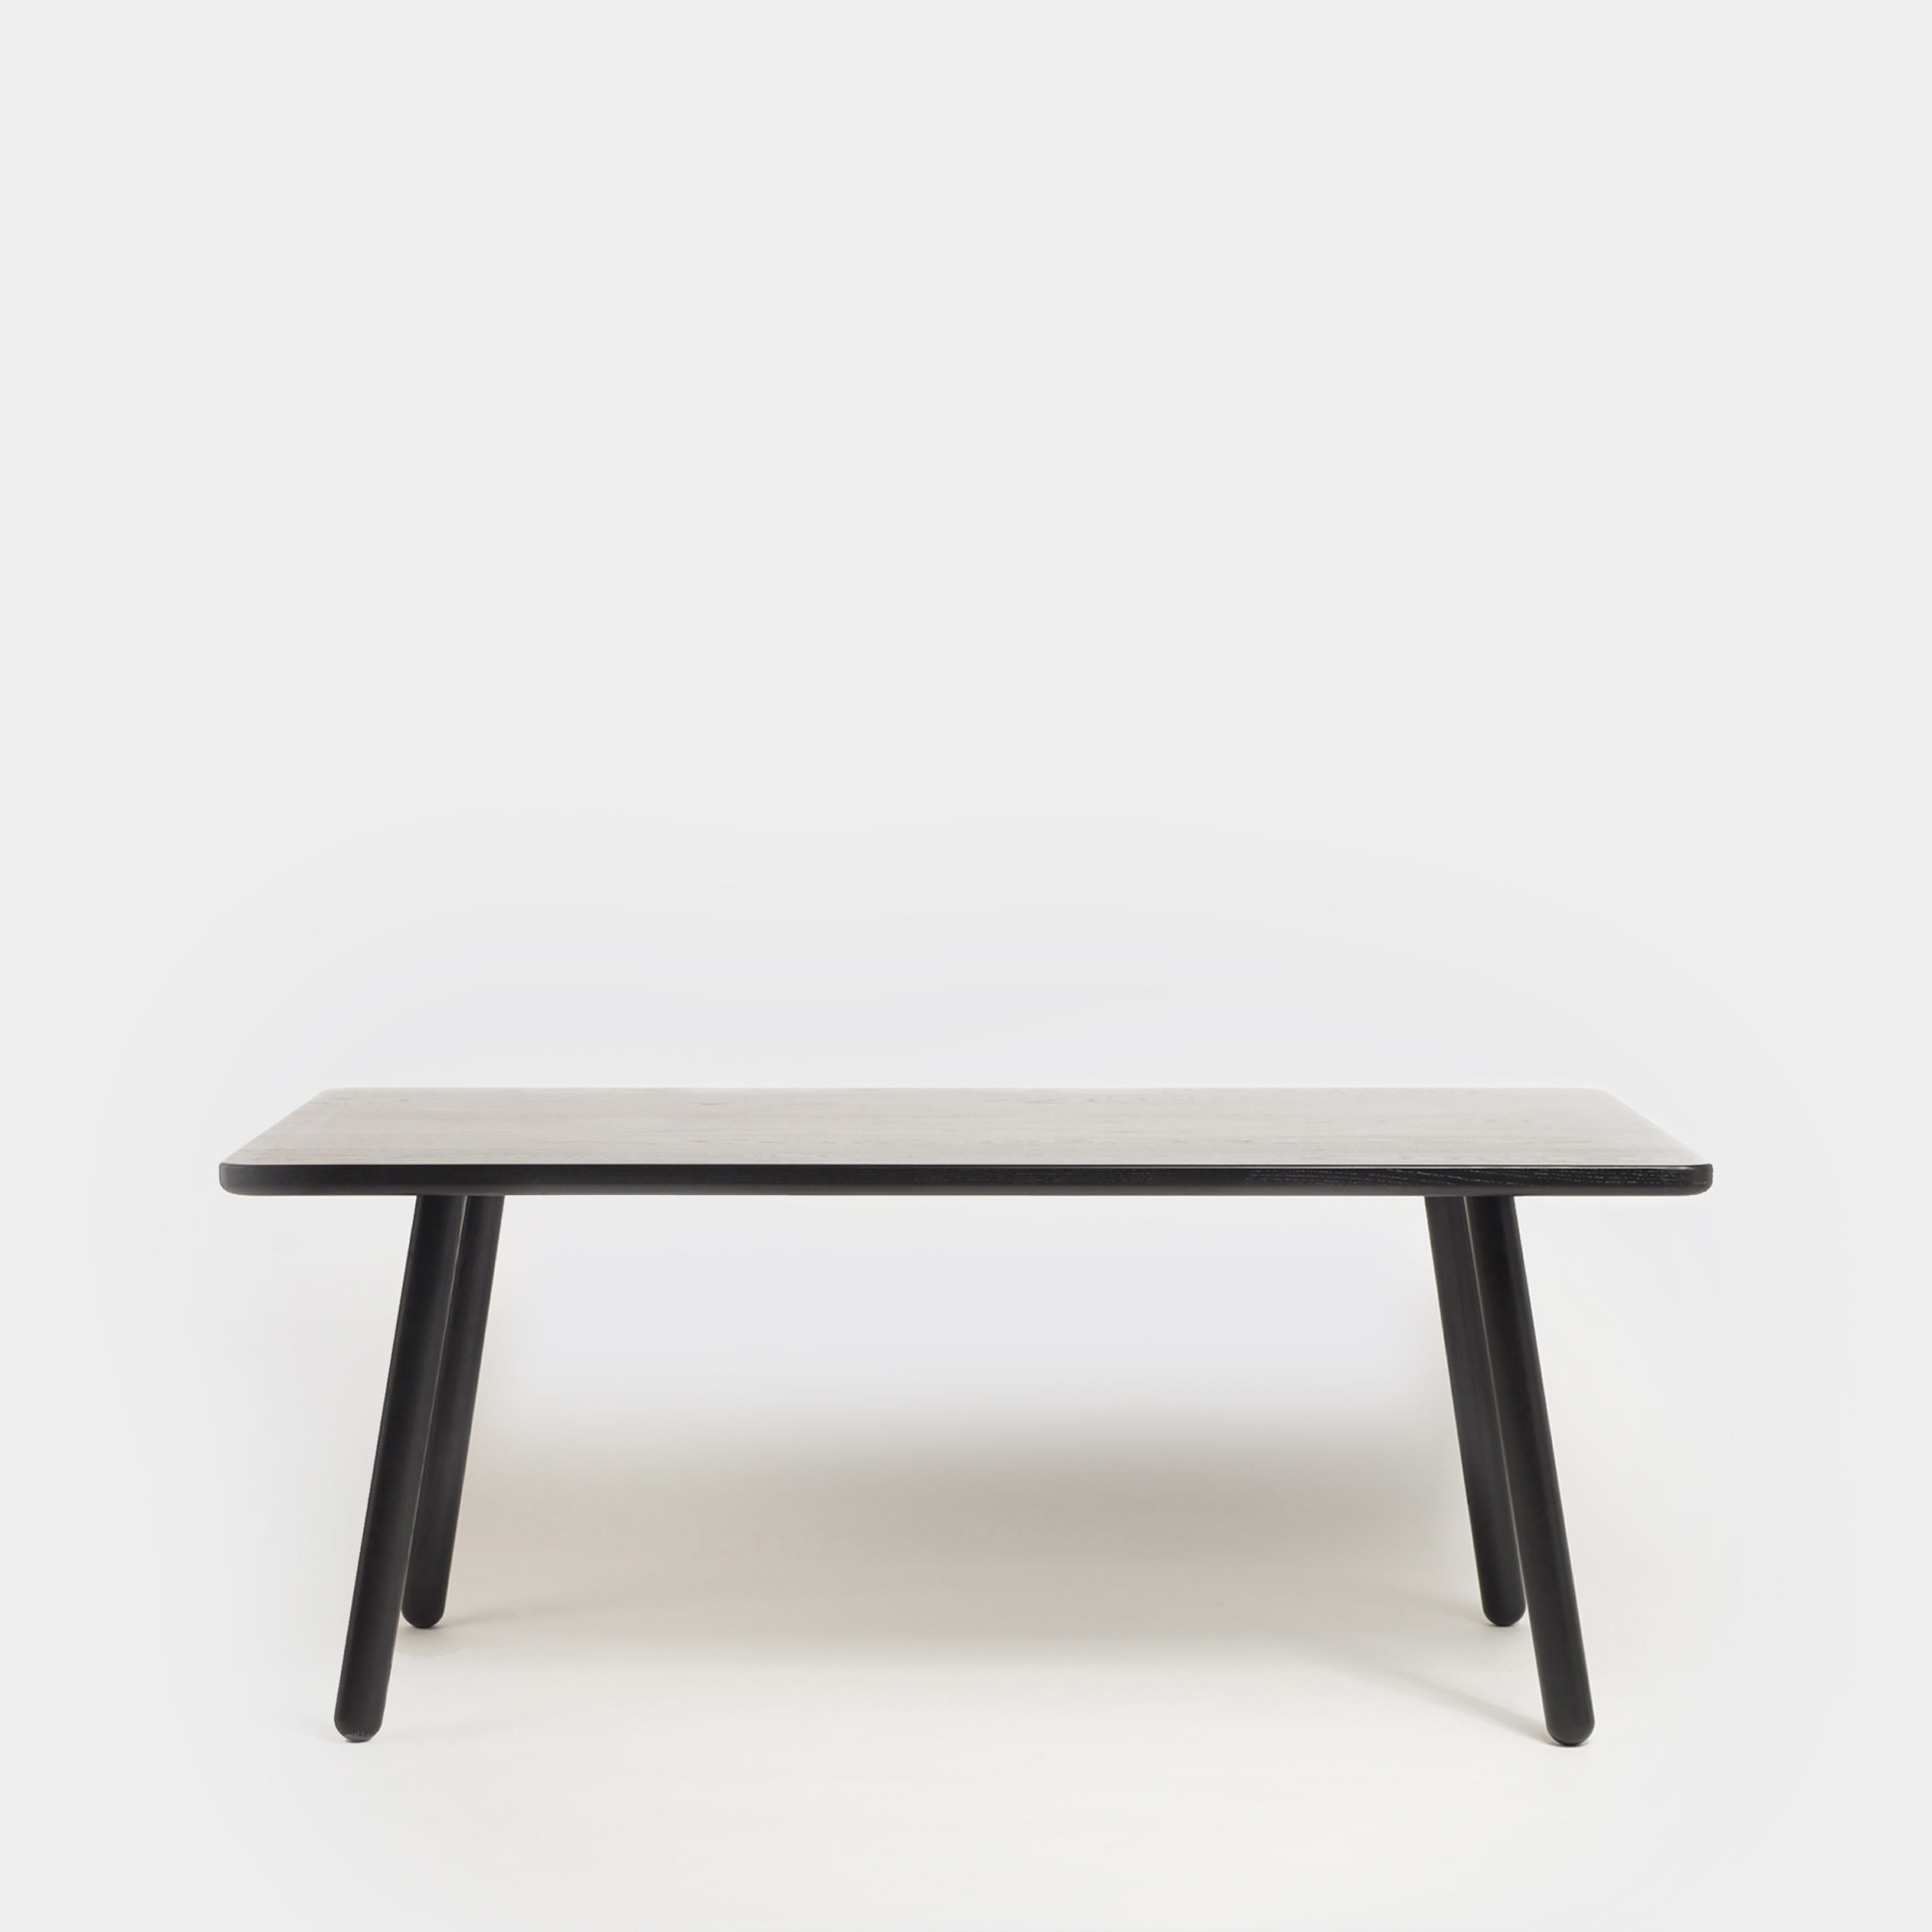 Dining Table One Black Series One Furniture Another Country